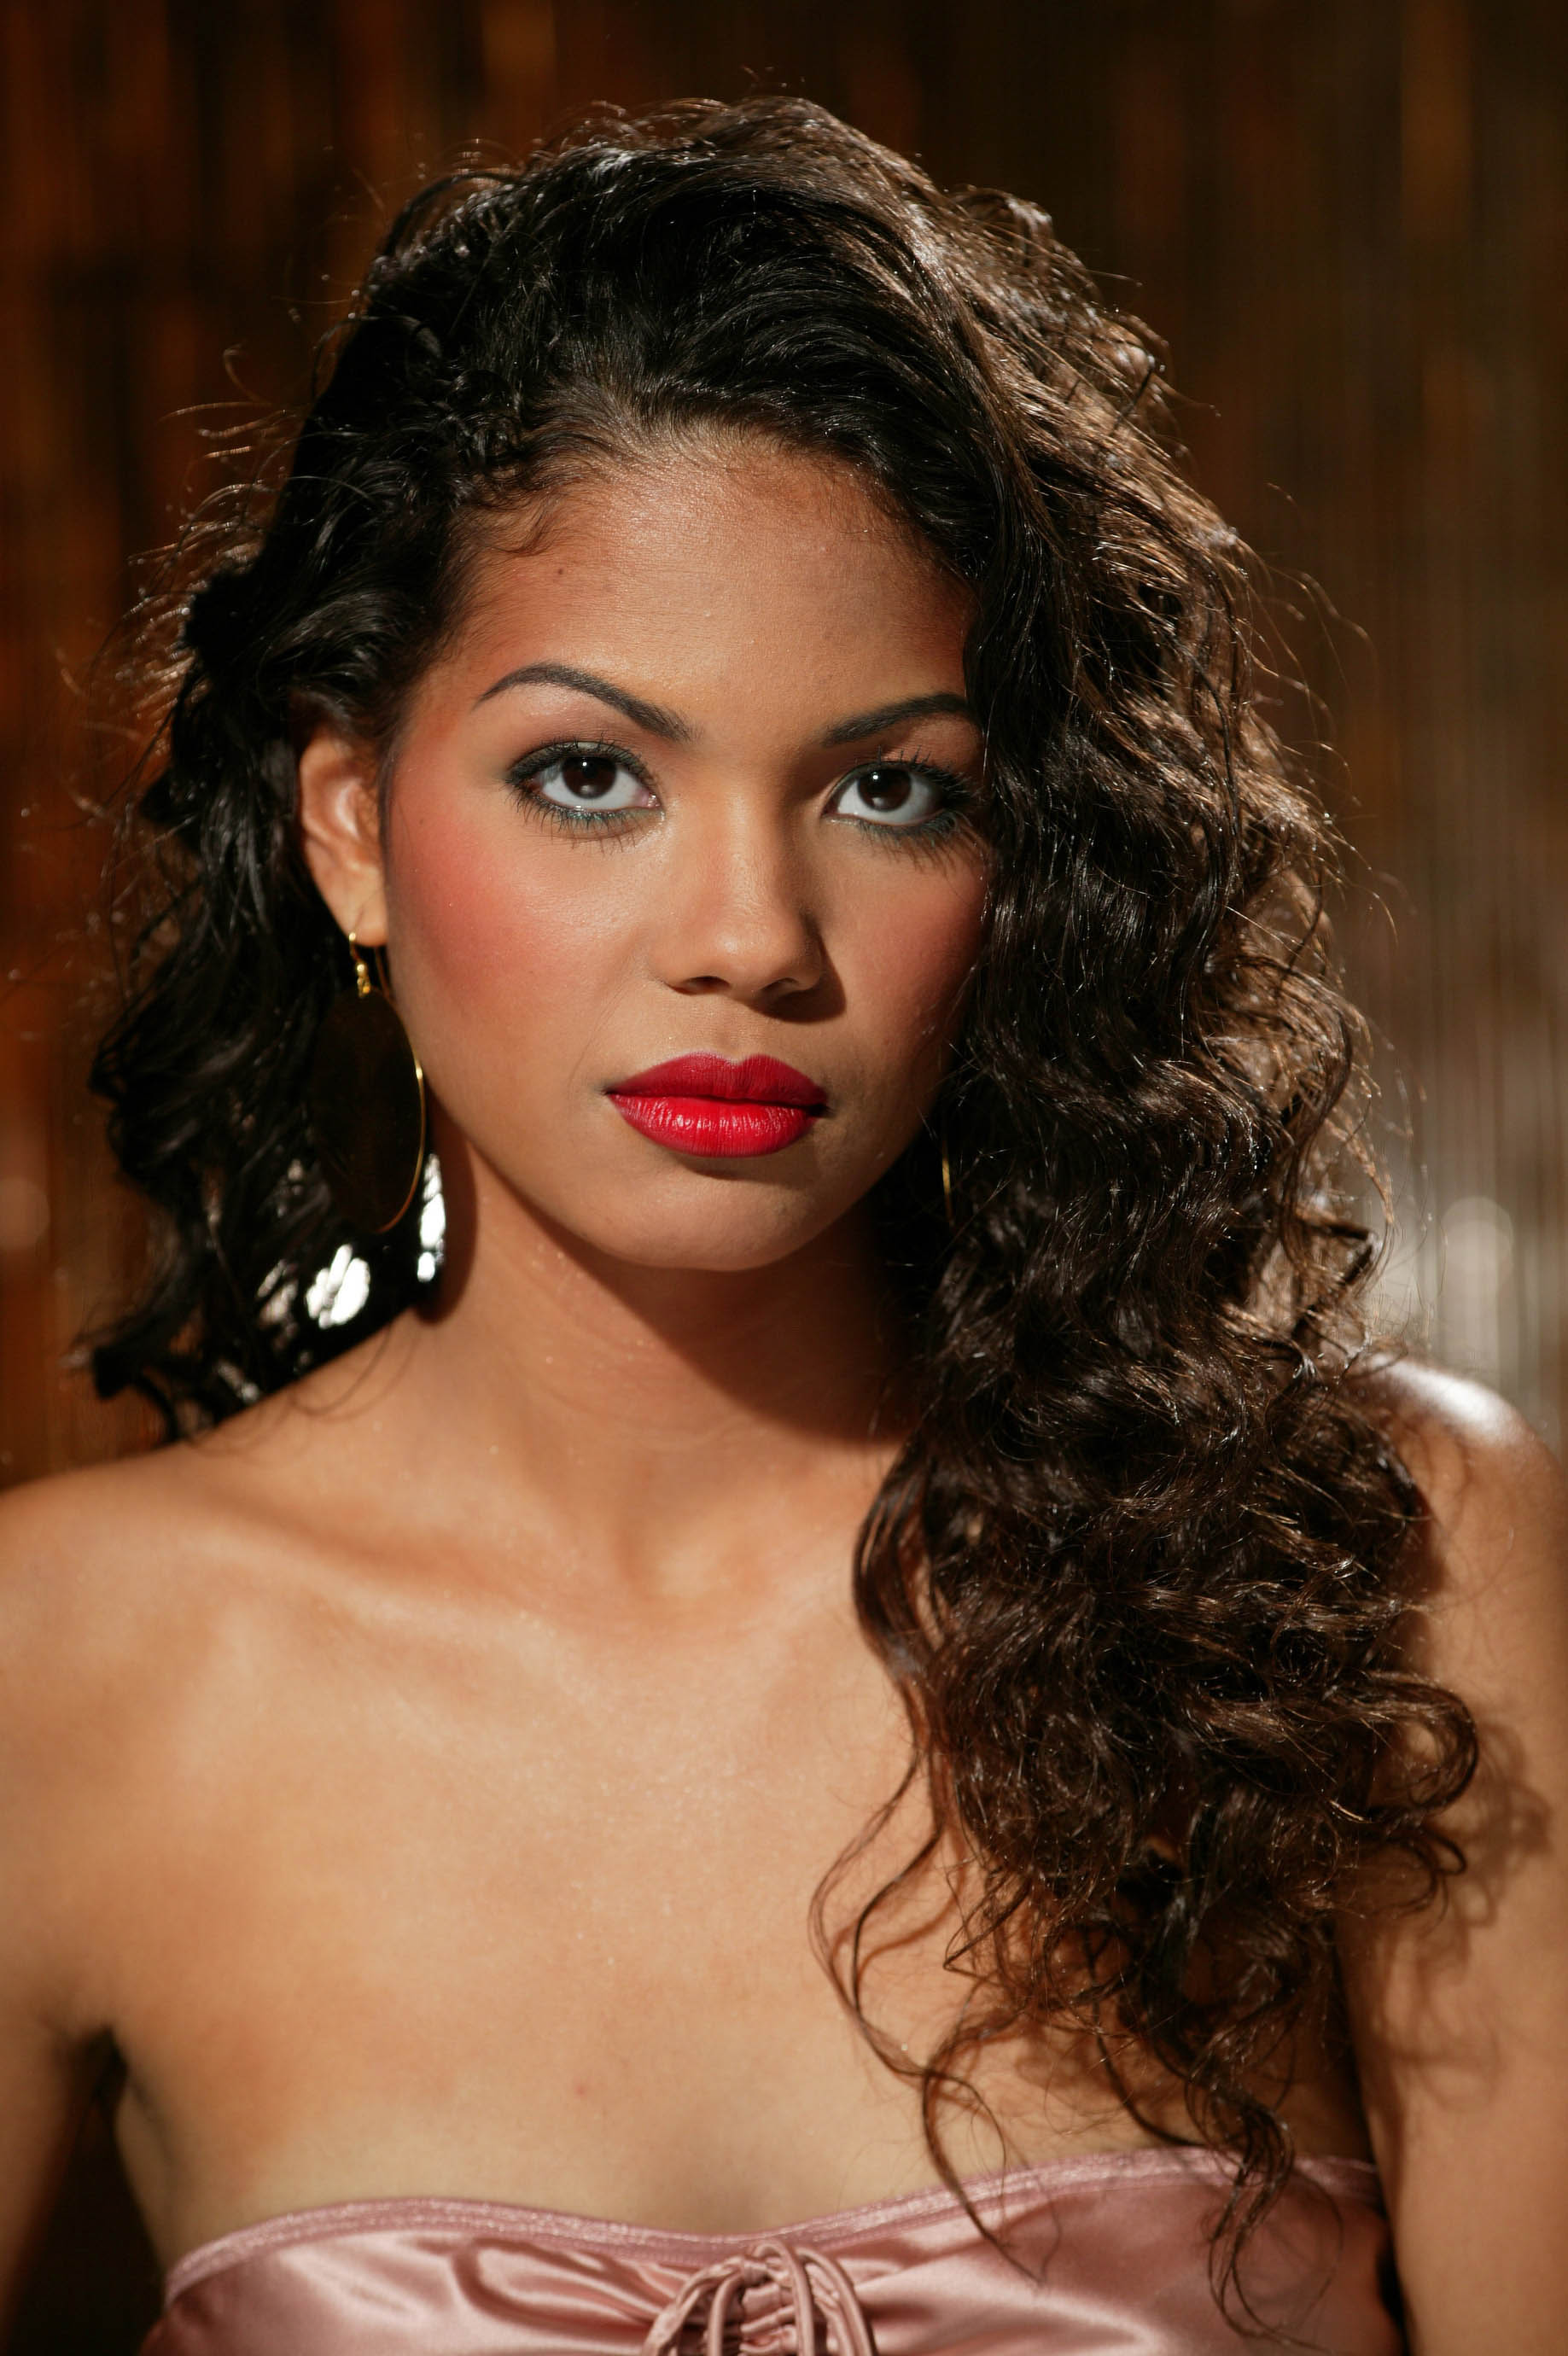 Jennifer Freeman - Images Colection